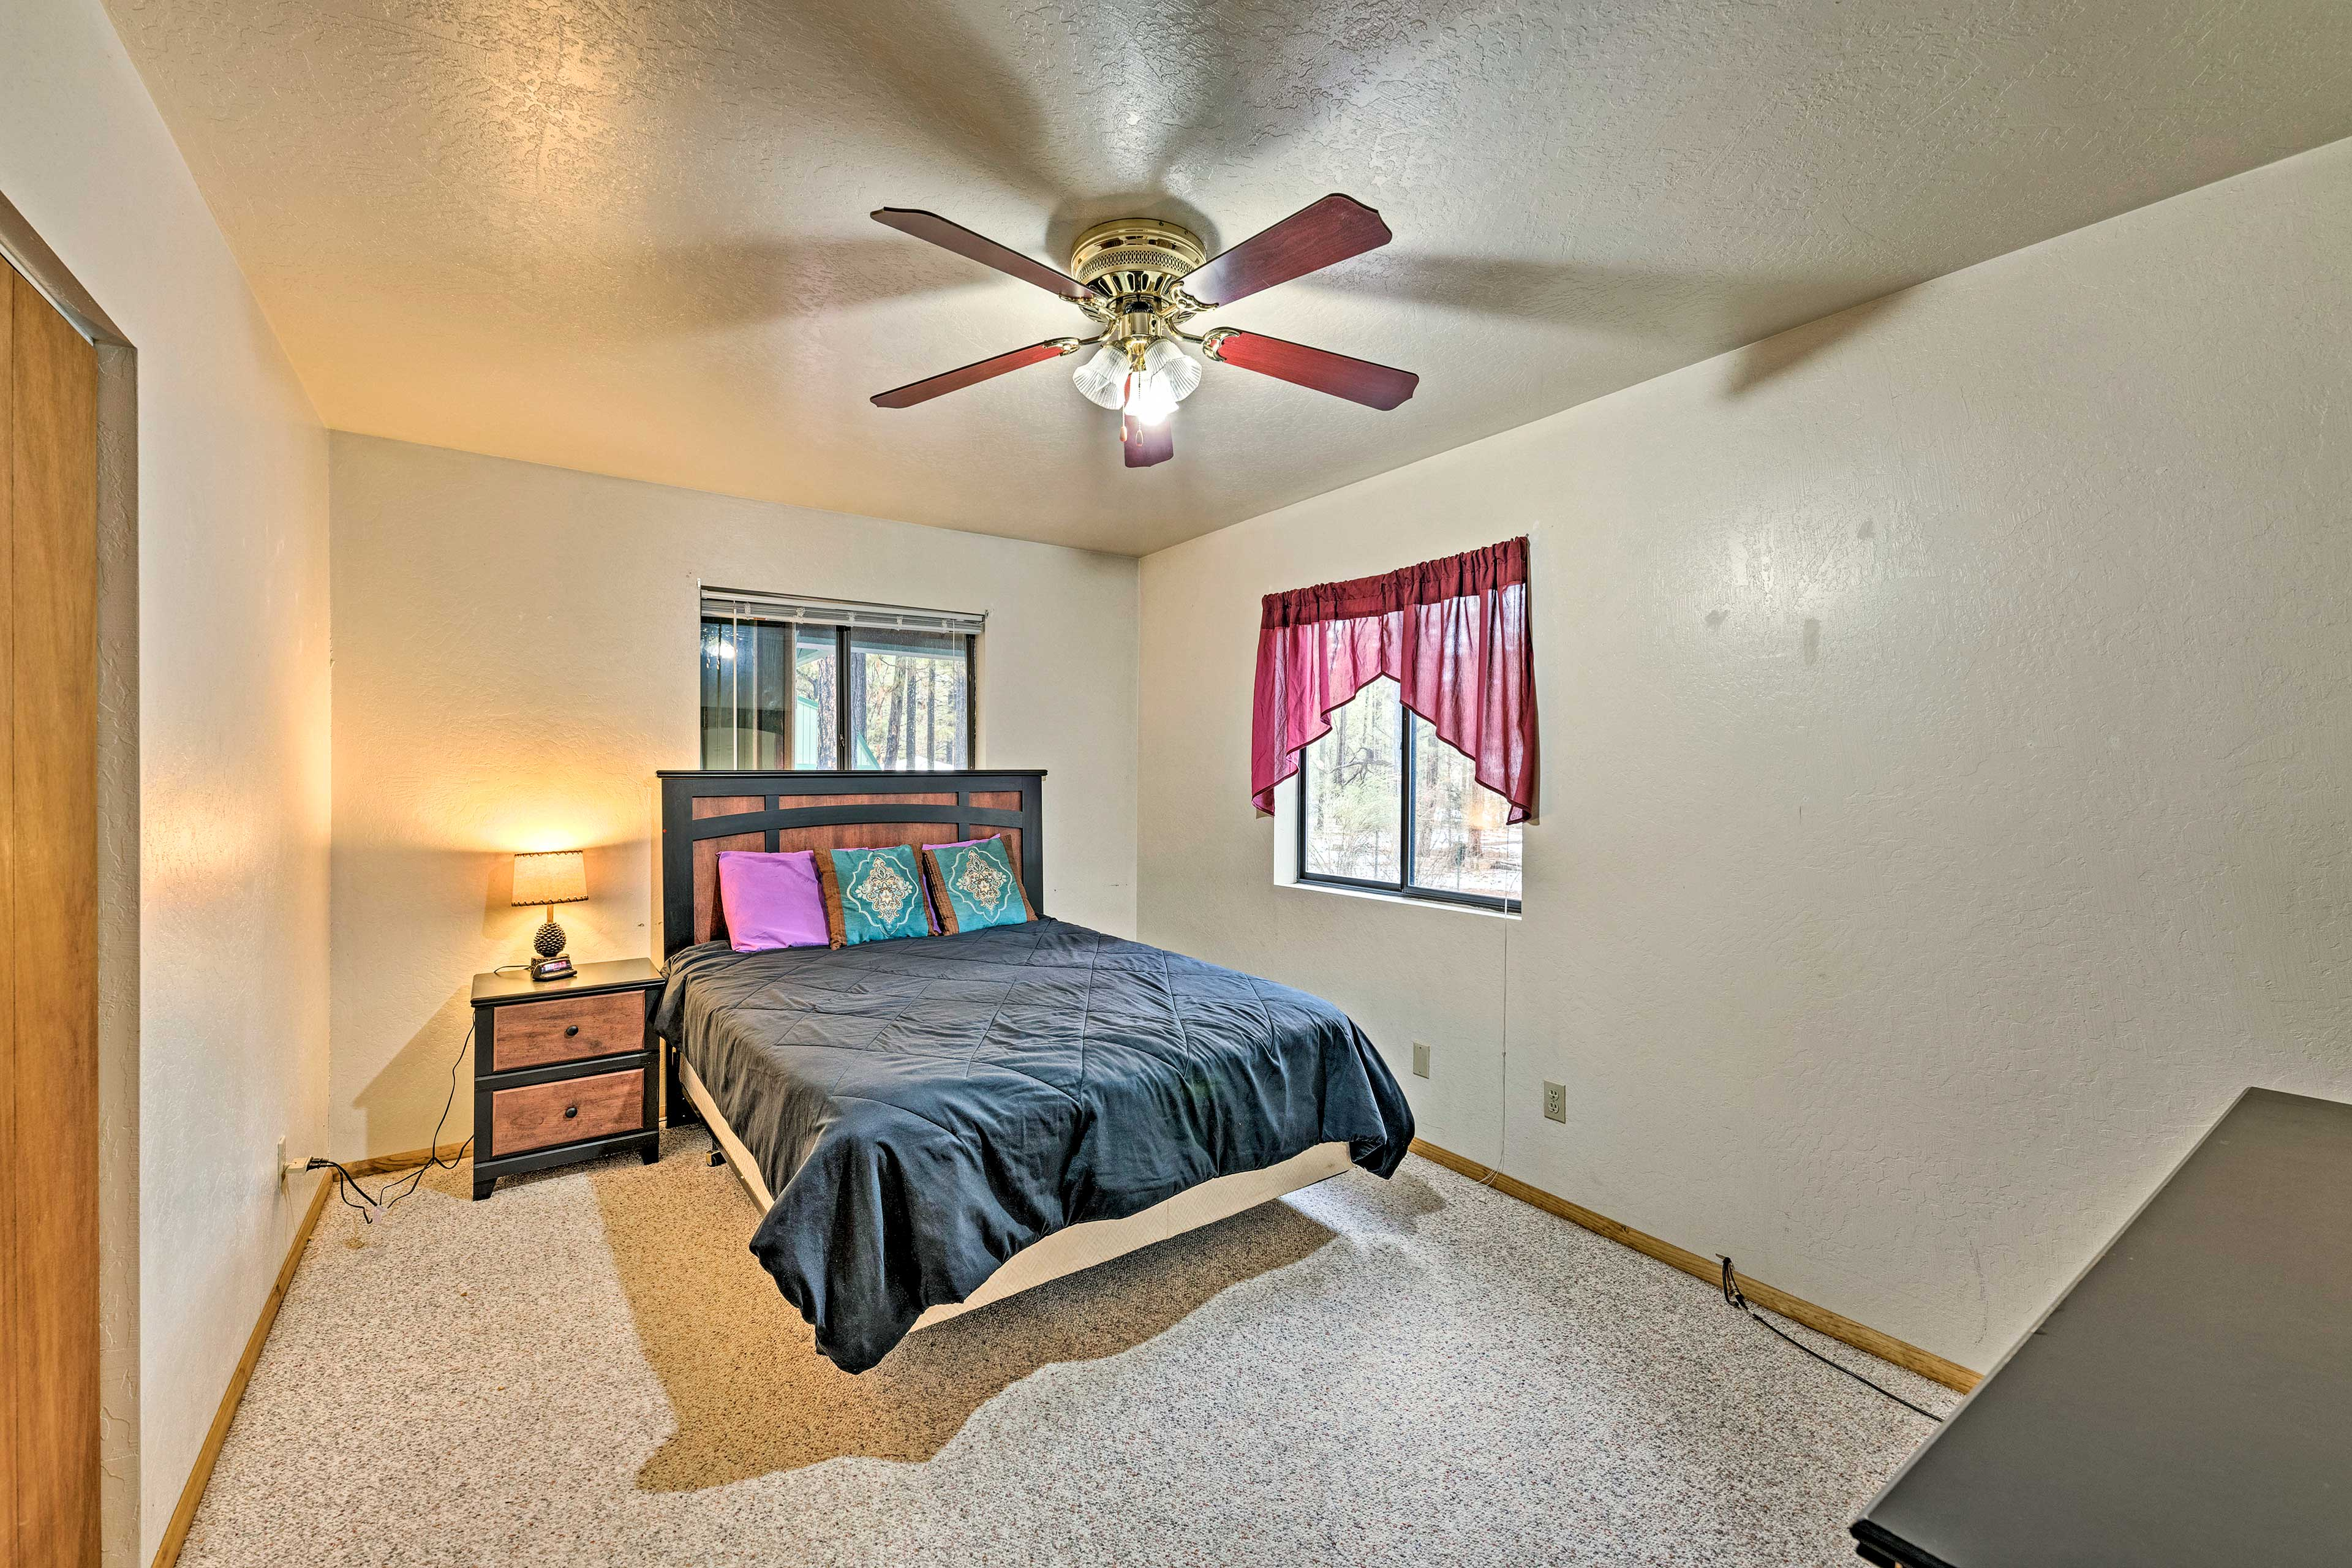 Keep cool at night under the ceiling fans.